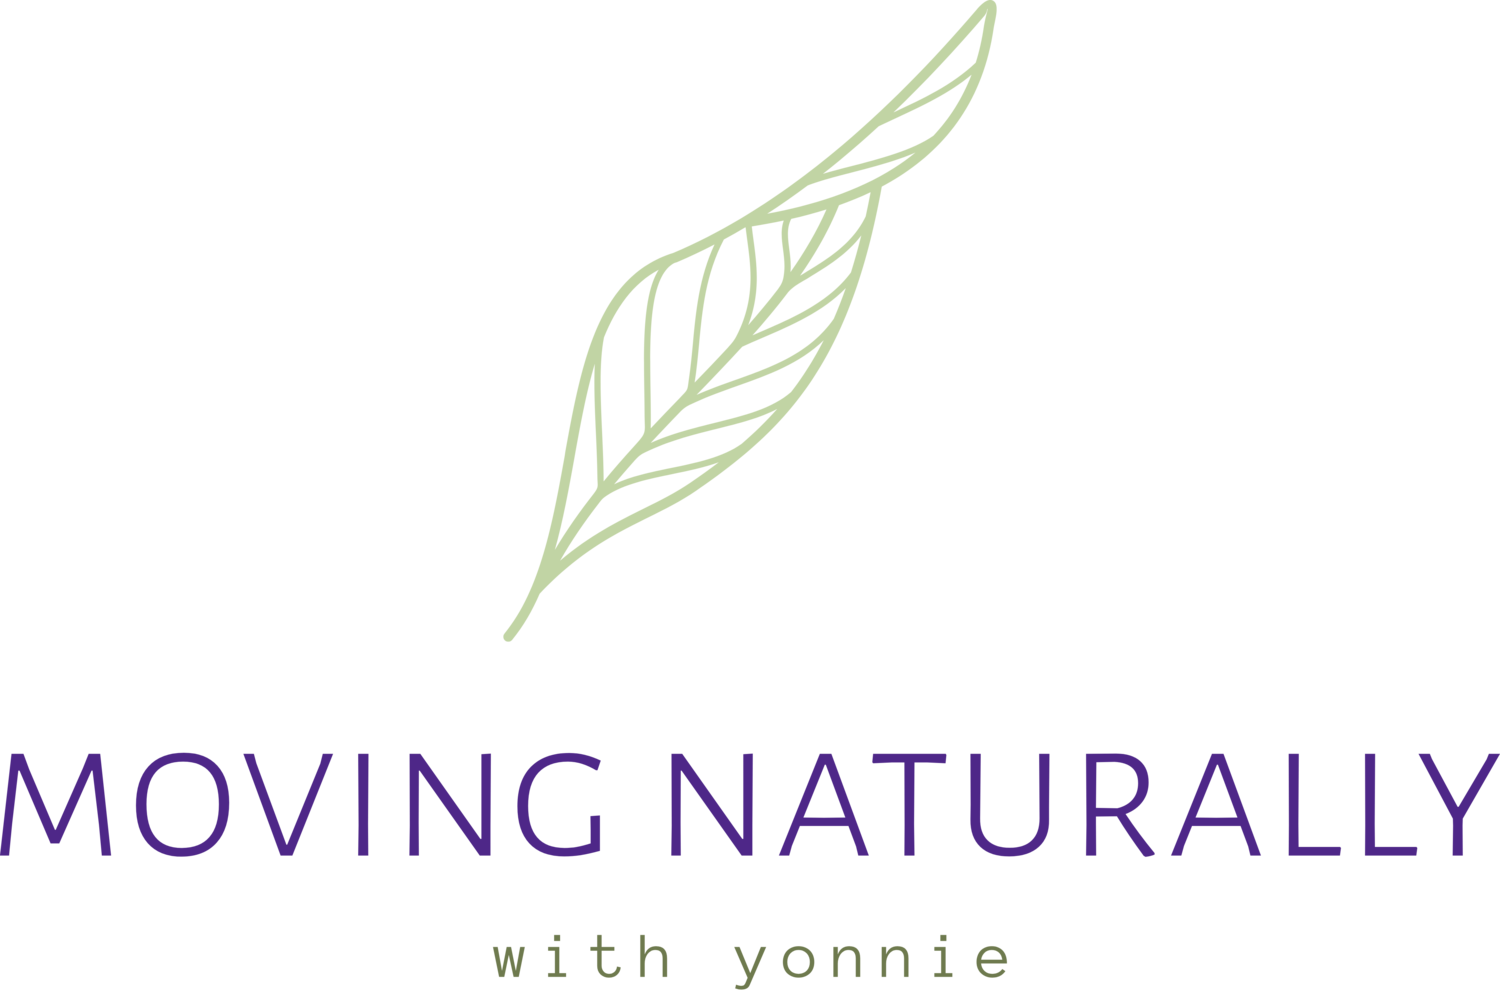 moving naturally with yonnie